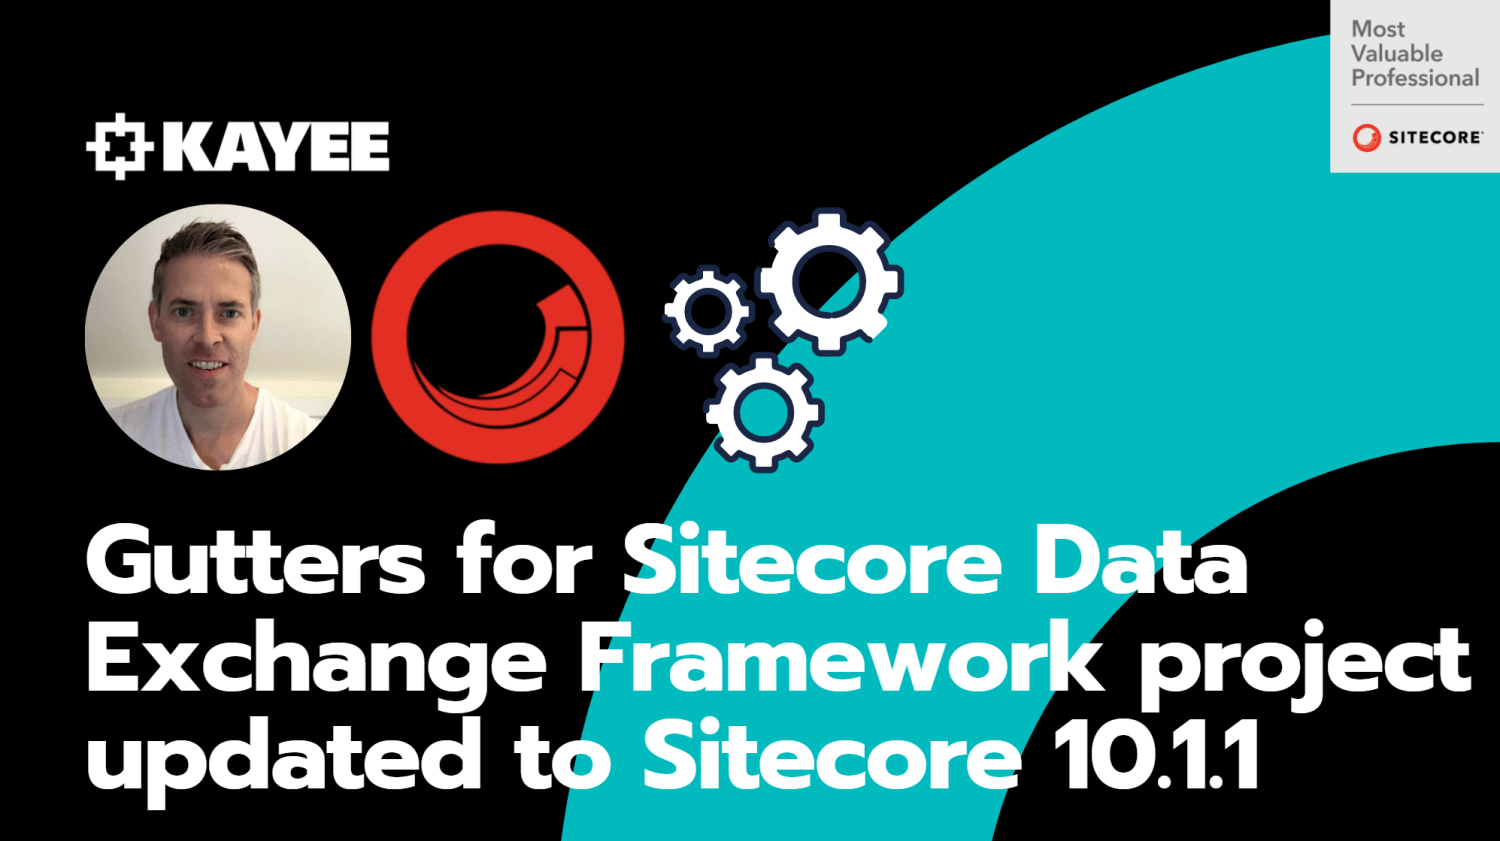 Gutters for Sitecore Data Exchange Framework project updated to Sitecore 10.1.1